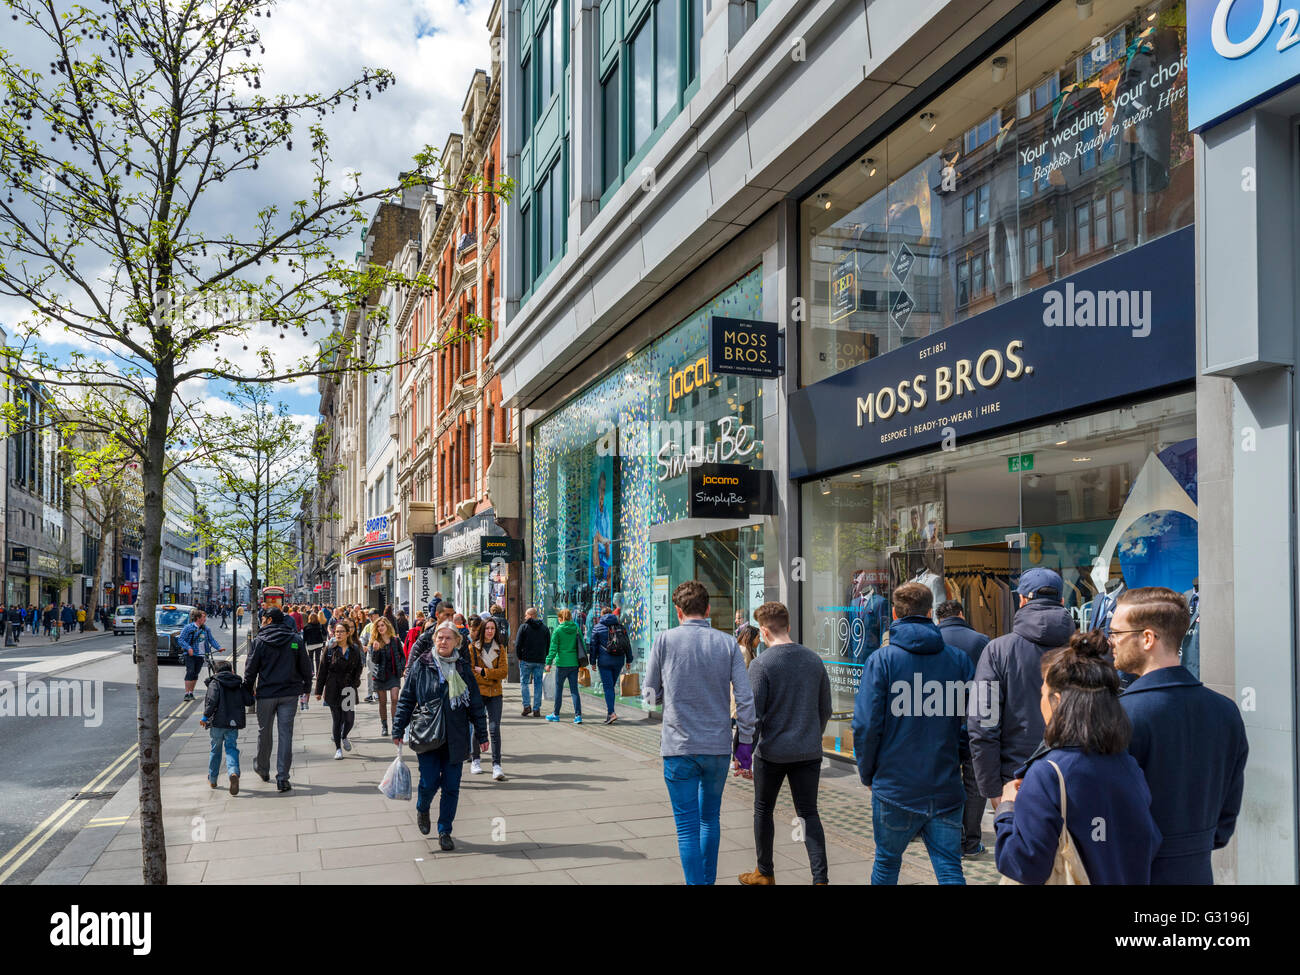 Shops on Oxford Street in the West End, London, England, UK - Stock Image